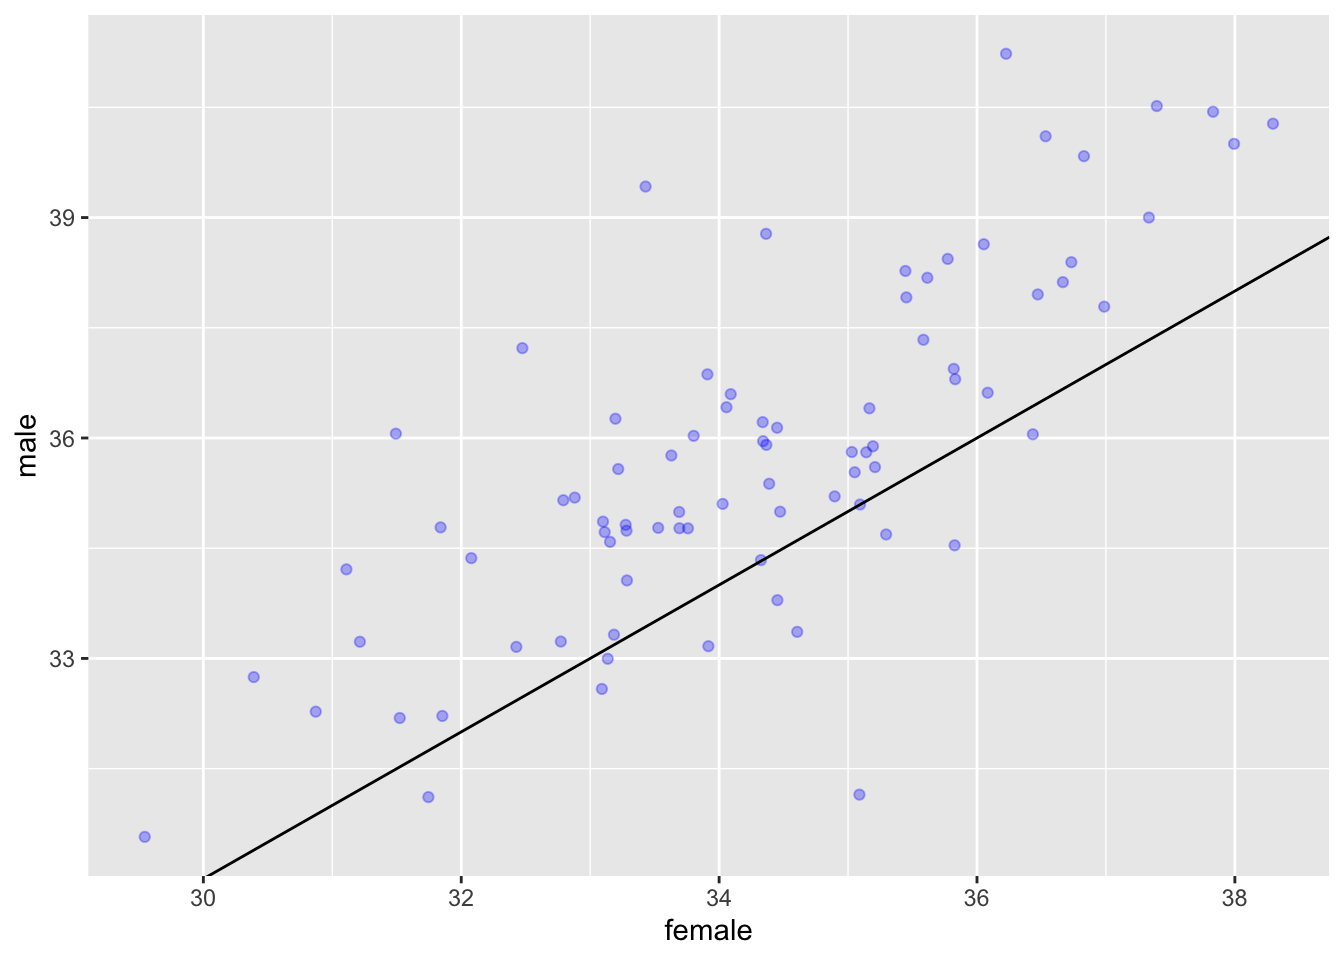 how to add ending value in ggplot